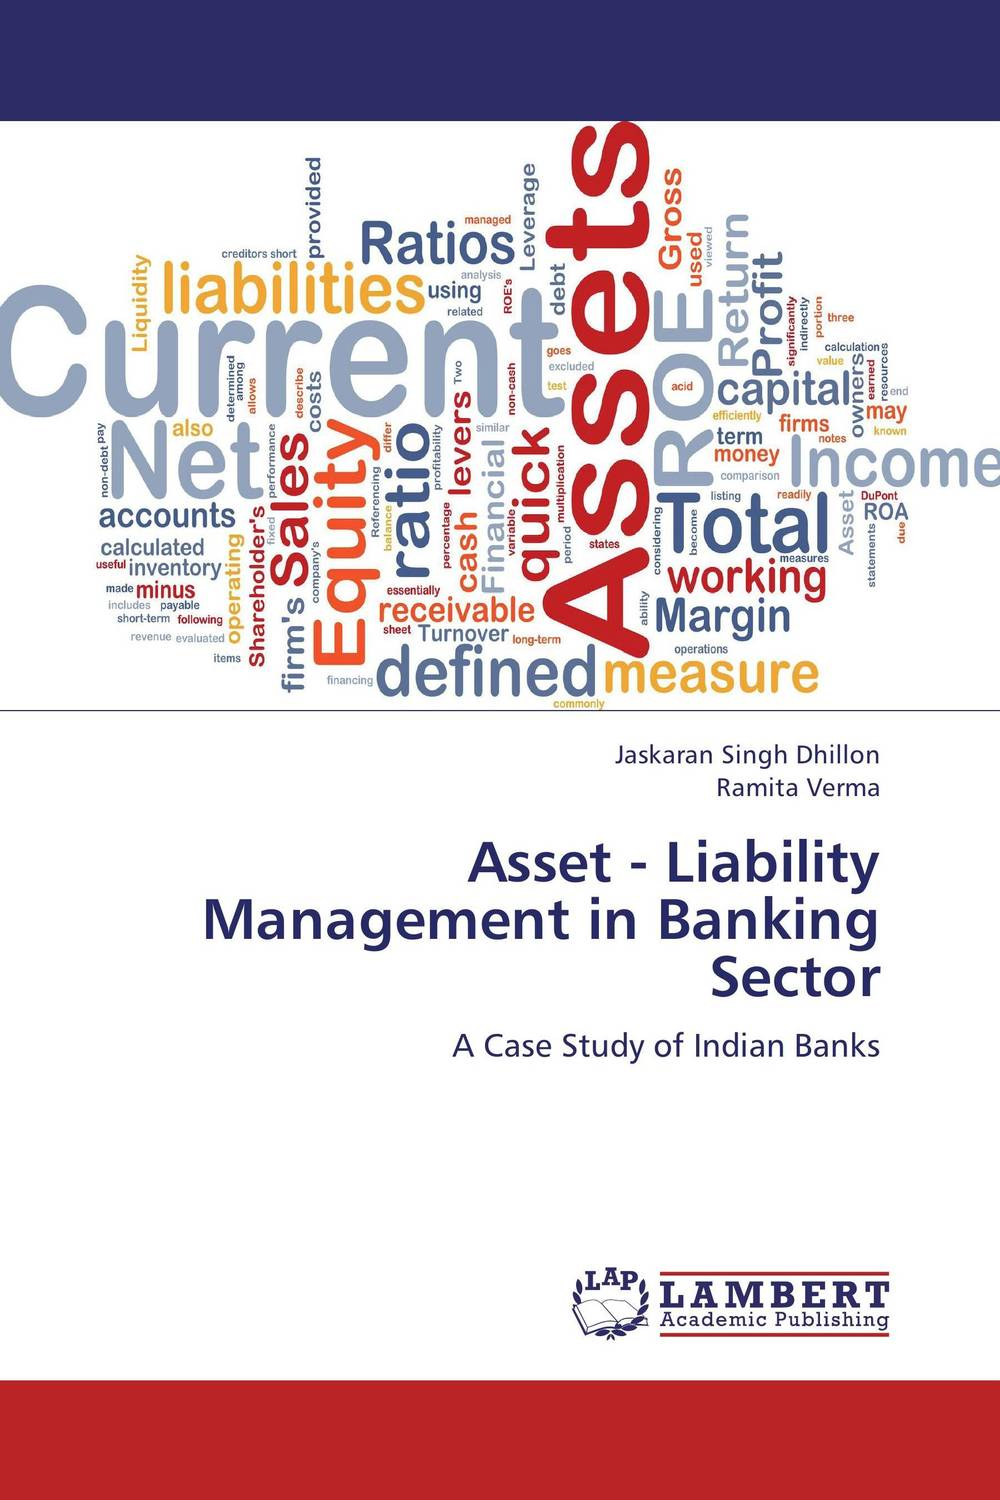 Asset - Liability Management in Banking Sector kenji imai advanced financial risk management tools and techniques for integrated credit risk and interest rate risk management